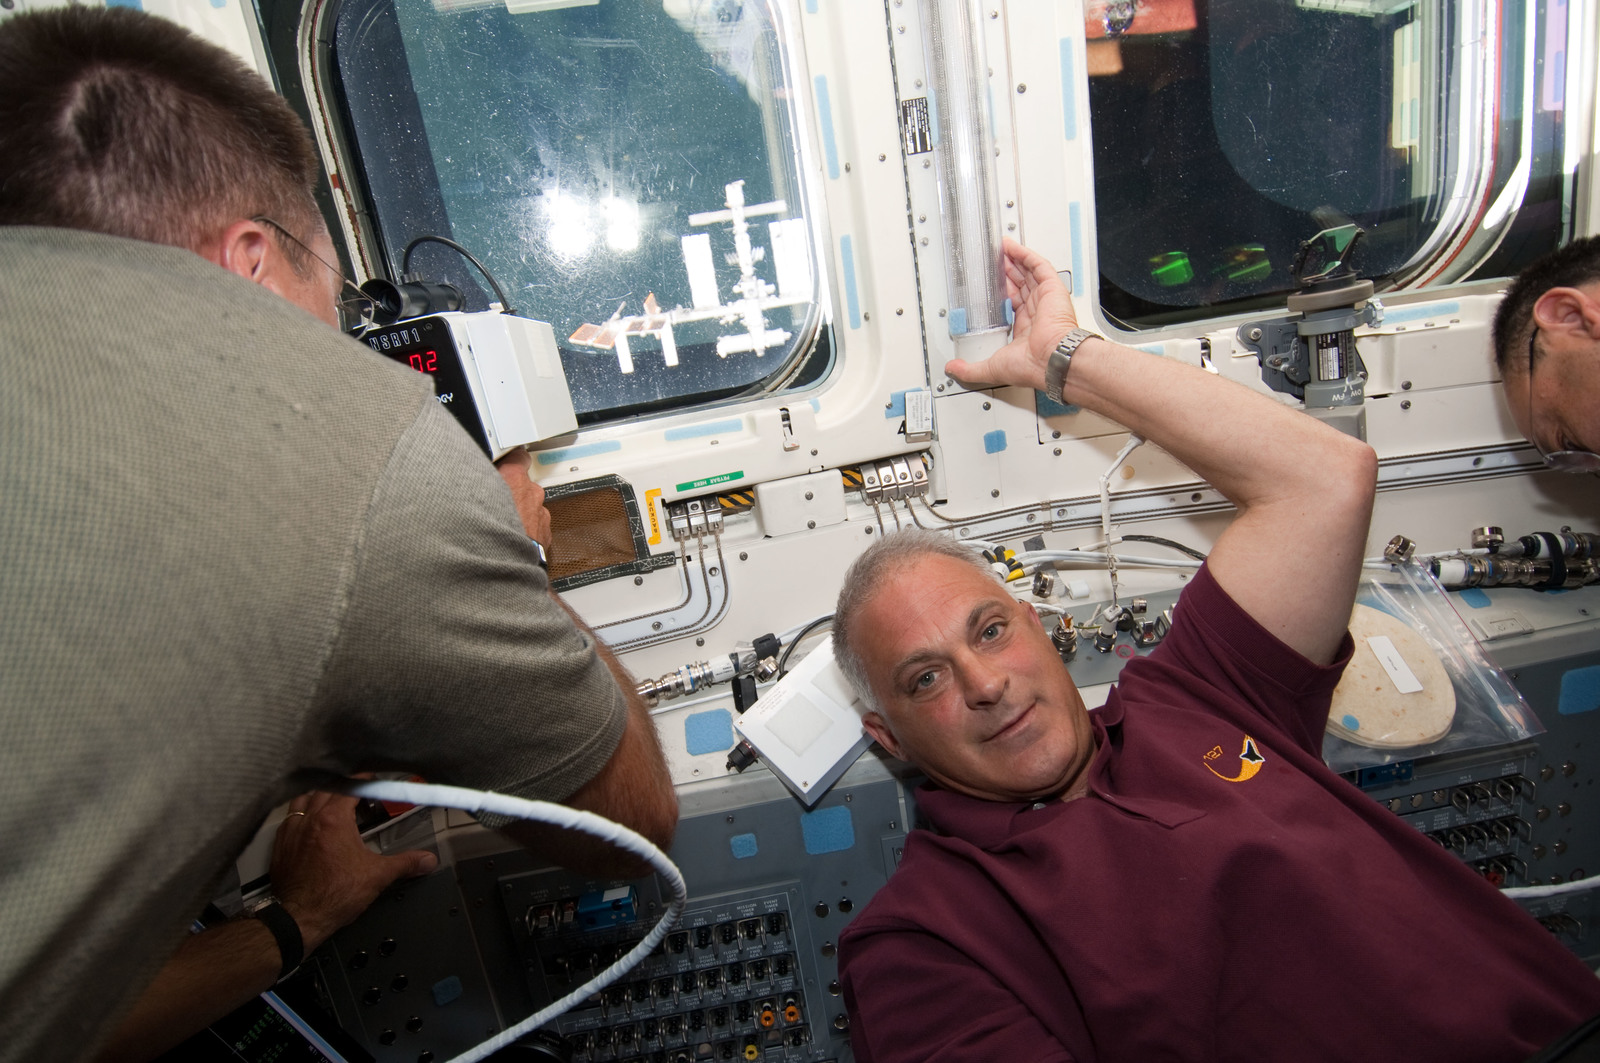 S127E006637 - STS-127 - Marshburn and Polansky on the aft FD of Space Shuttle Endeavour during STS-127 Mission